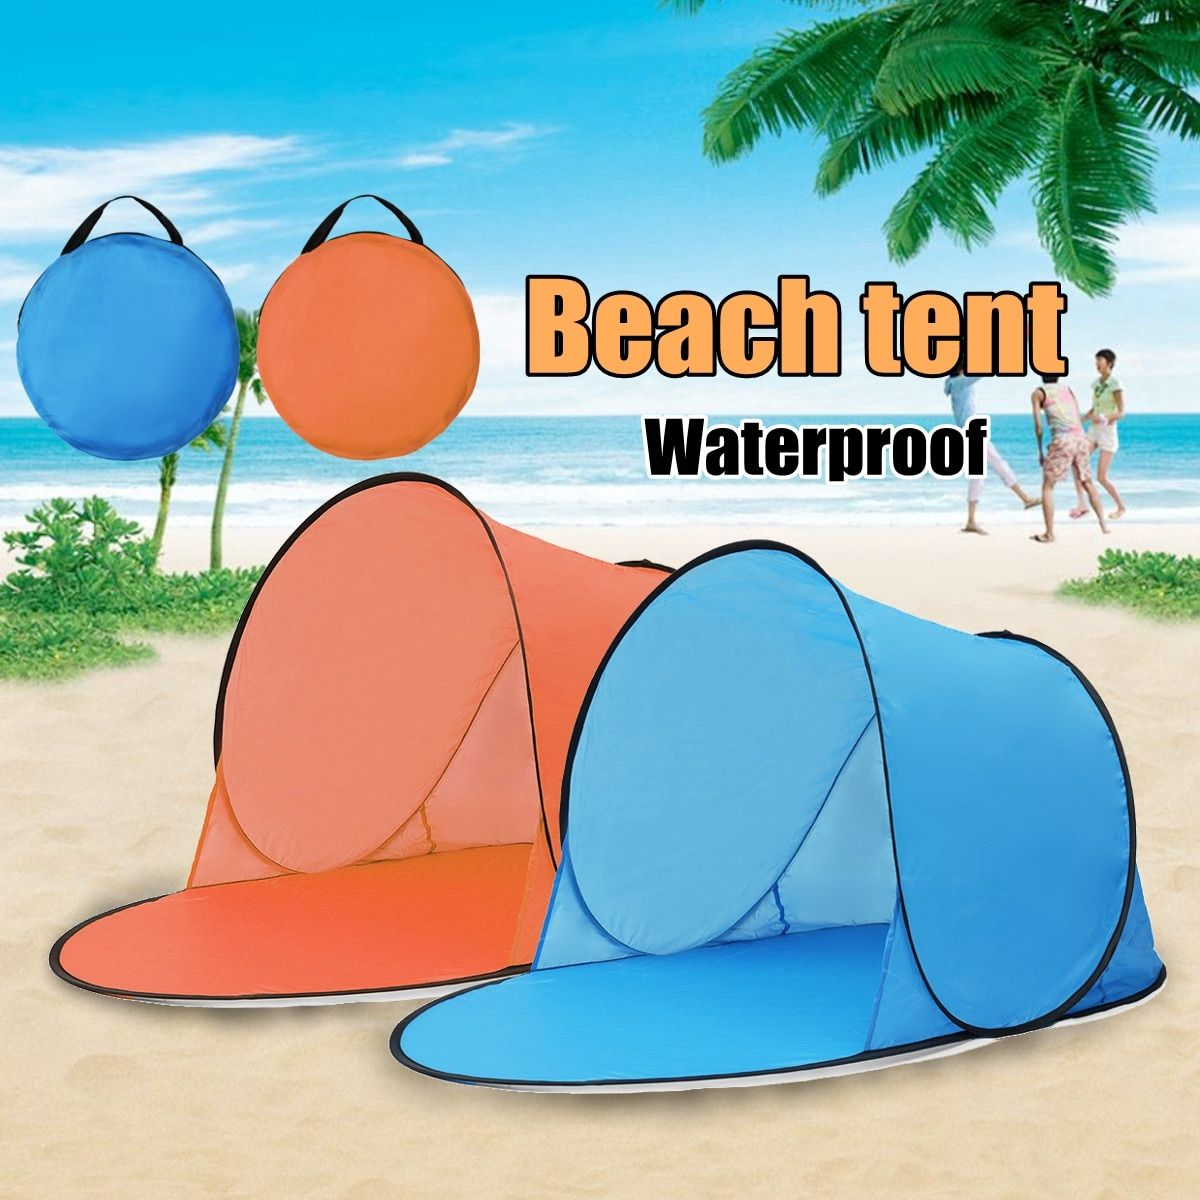 Outdoor Portable Waterproof Camping Beach Tent Pop Up Open Camping Tent Fishing <font><b>Hiking</b></font> Outdoor Automatic Instant Portable